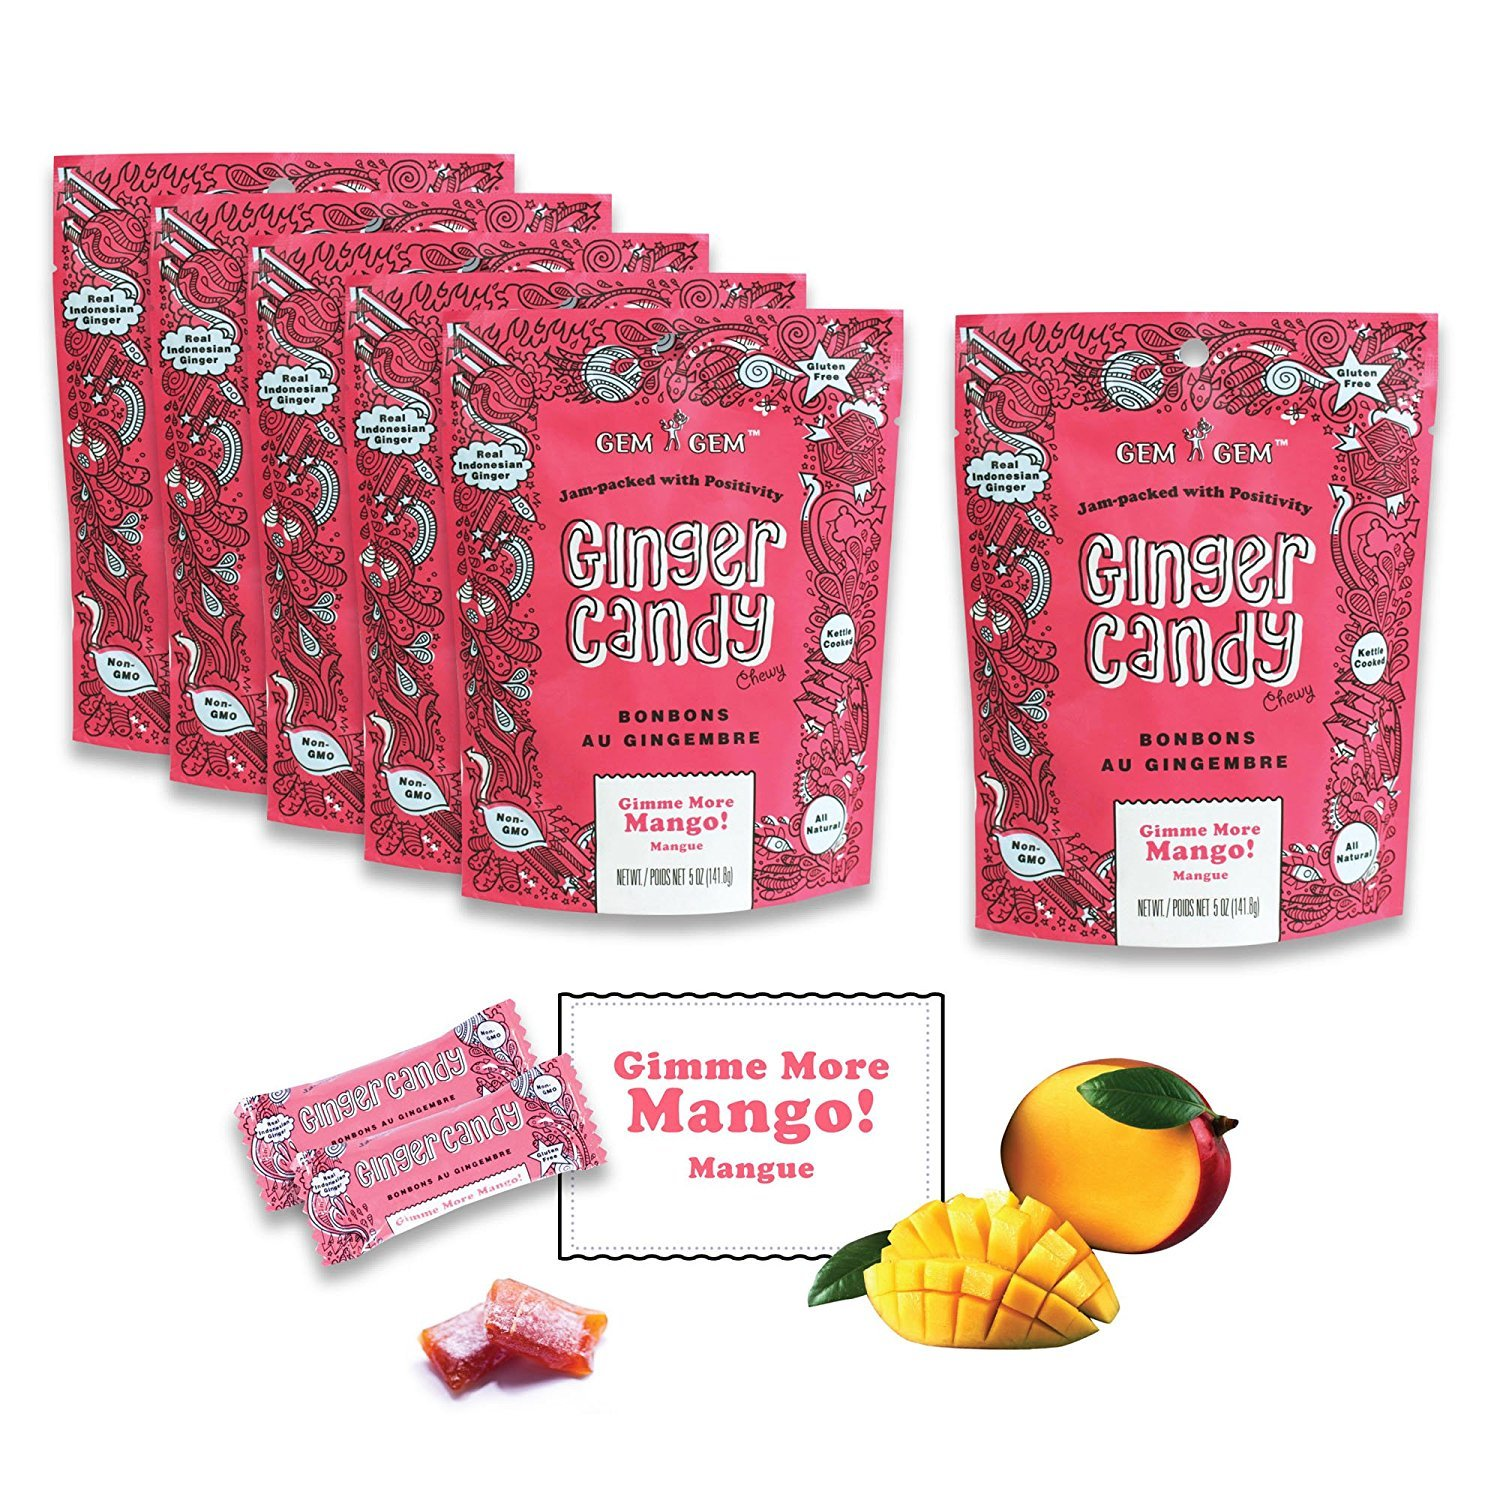 Gem Gem All Natural Chewy Gimme More Mango Ginger Candy 5 oz (Pack of 12) by Gem